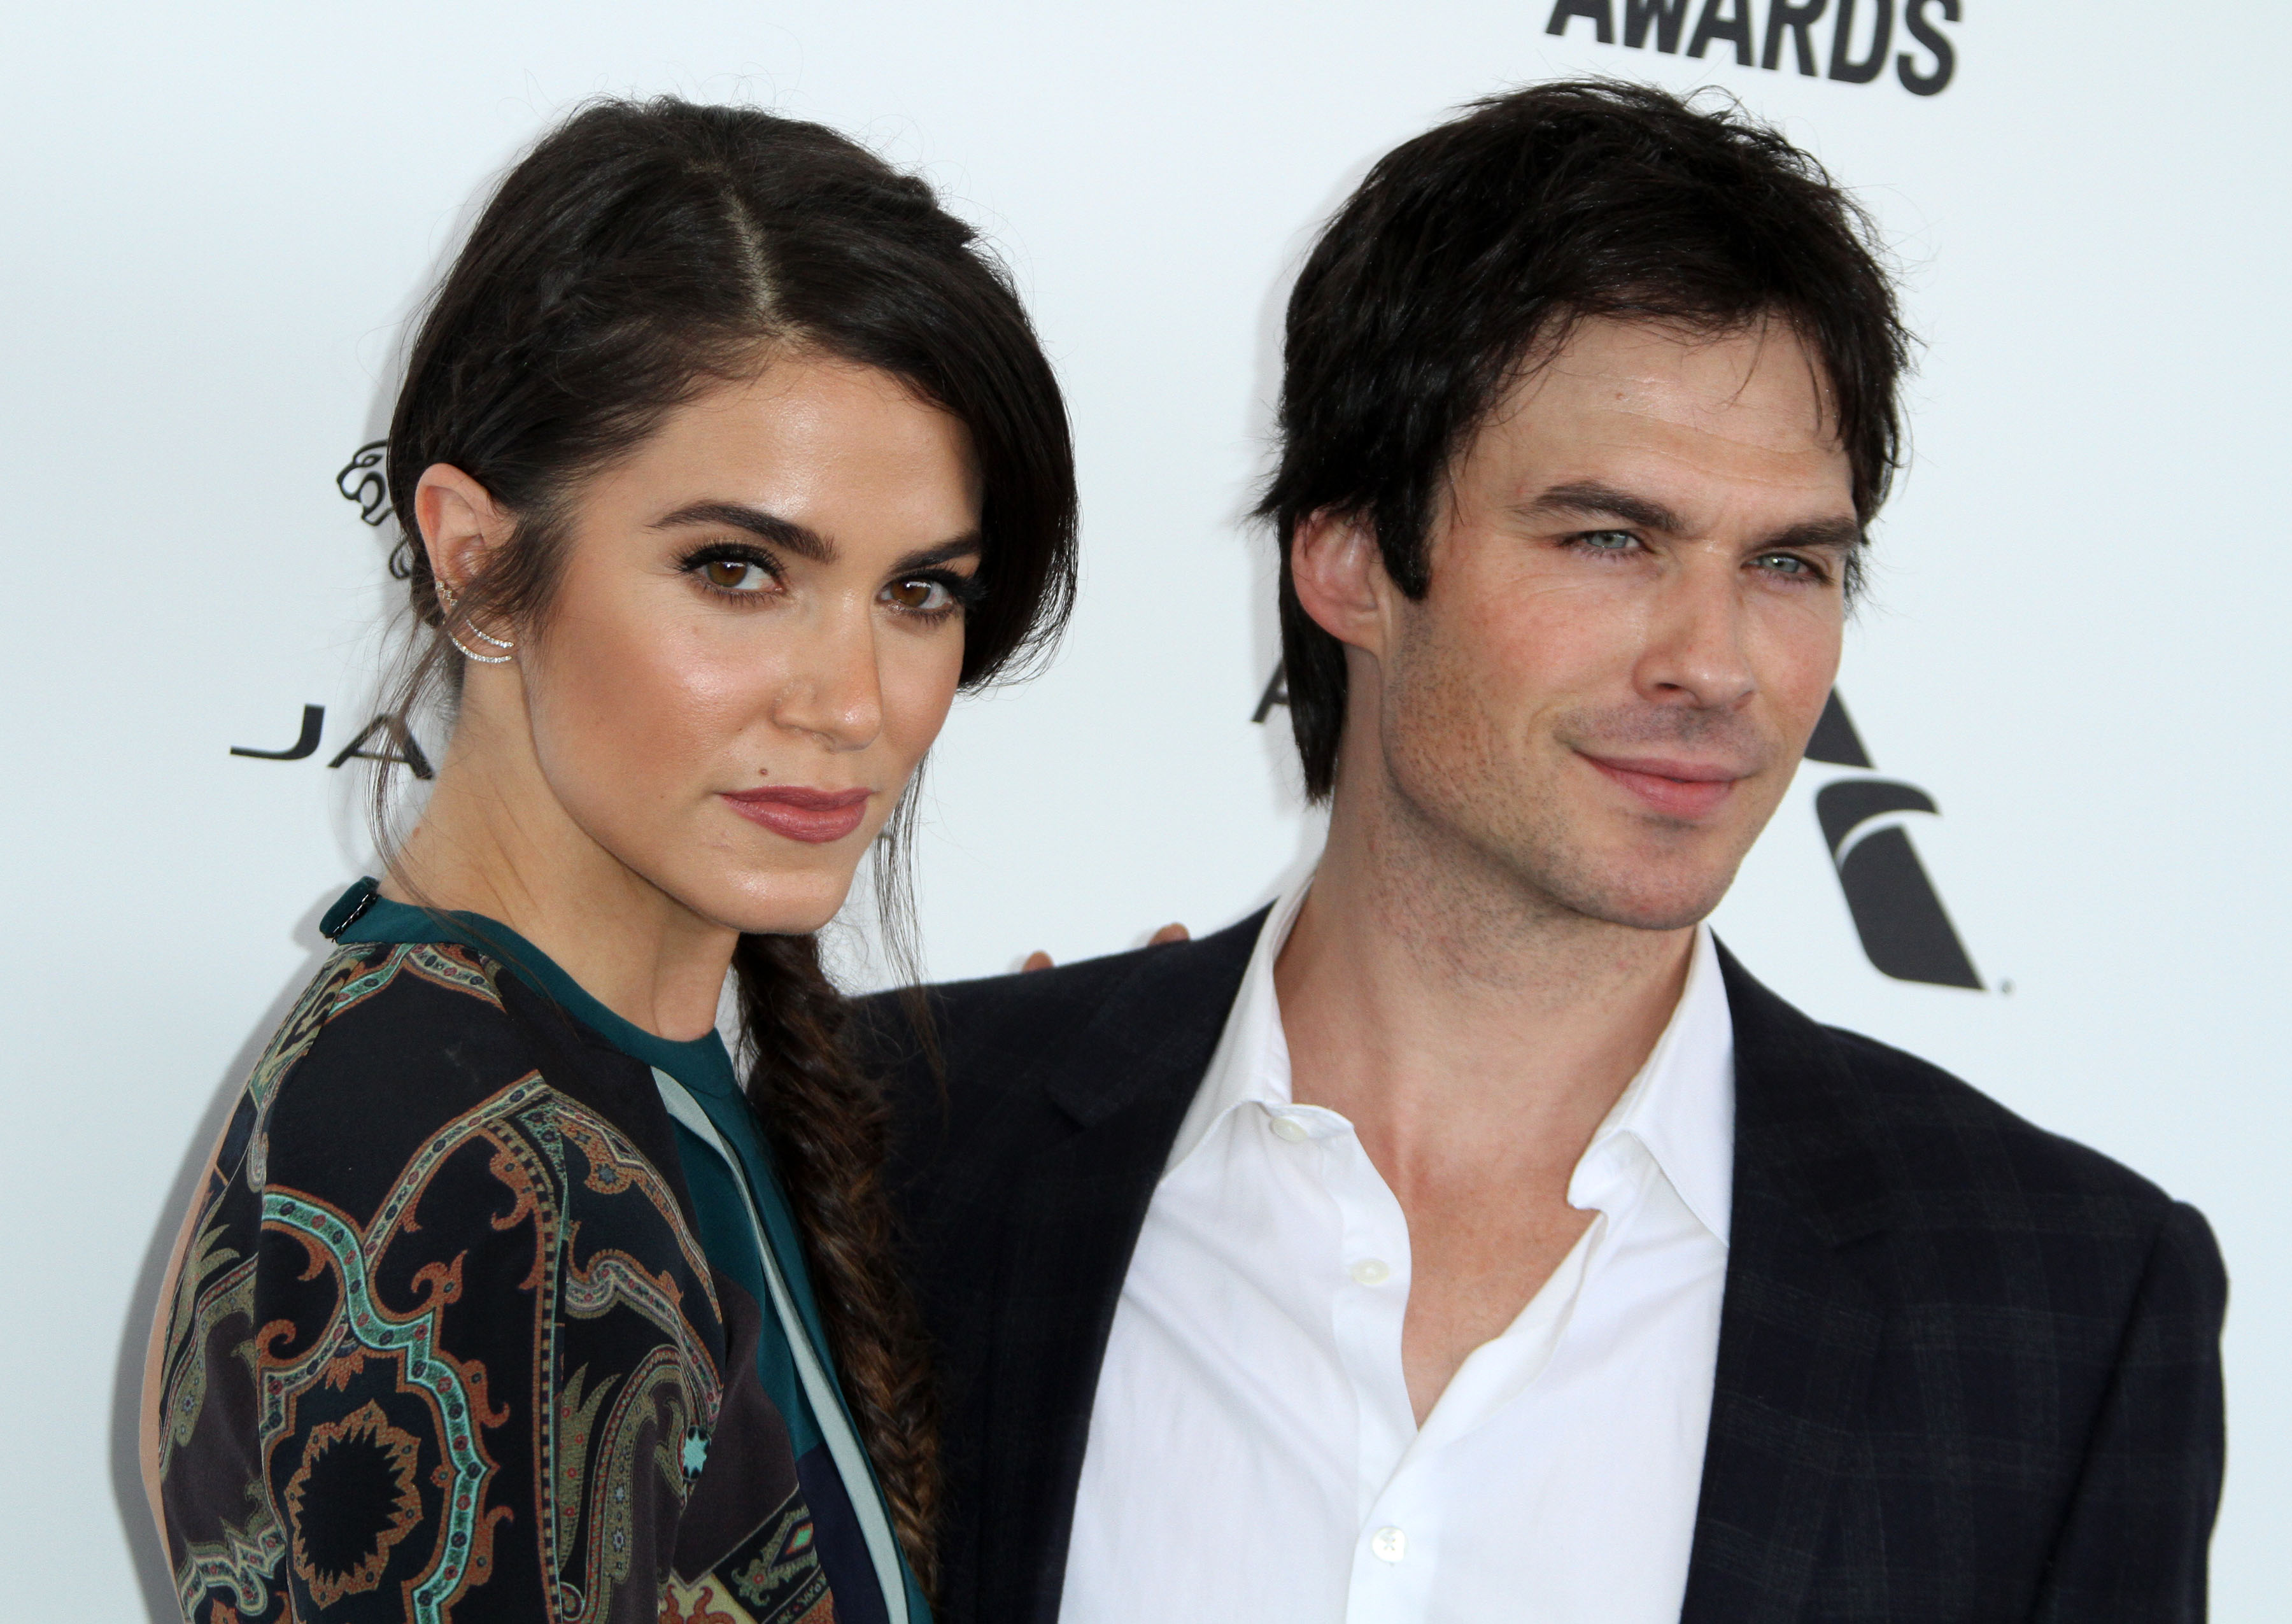 31st Independent Spirit Awards held at Santa Monica Beach  Featuring: Nikki Reed, husband Ian Somerhalder Where: Los Angeles, California, United States When: 27 Feb 2016 Credit: Adriana M. Barraza/WENN.com